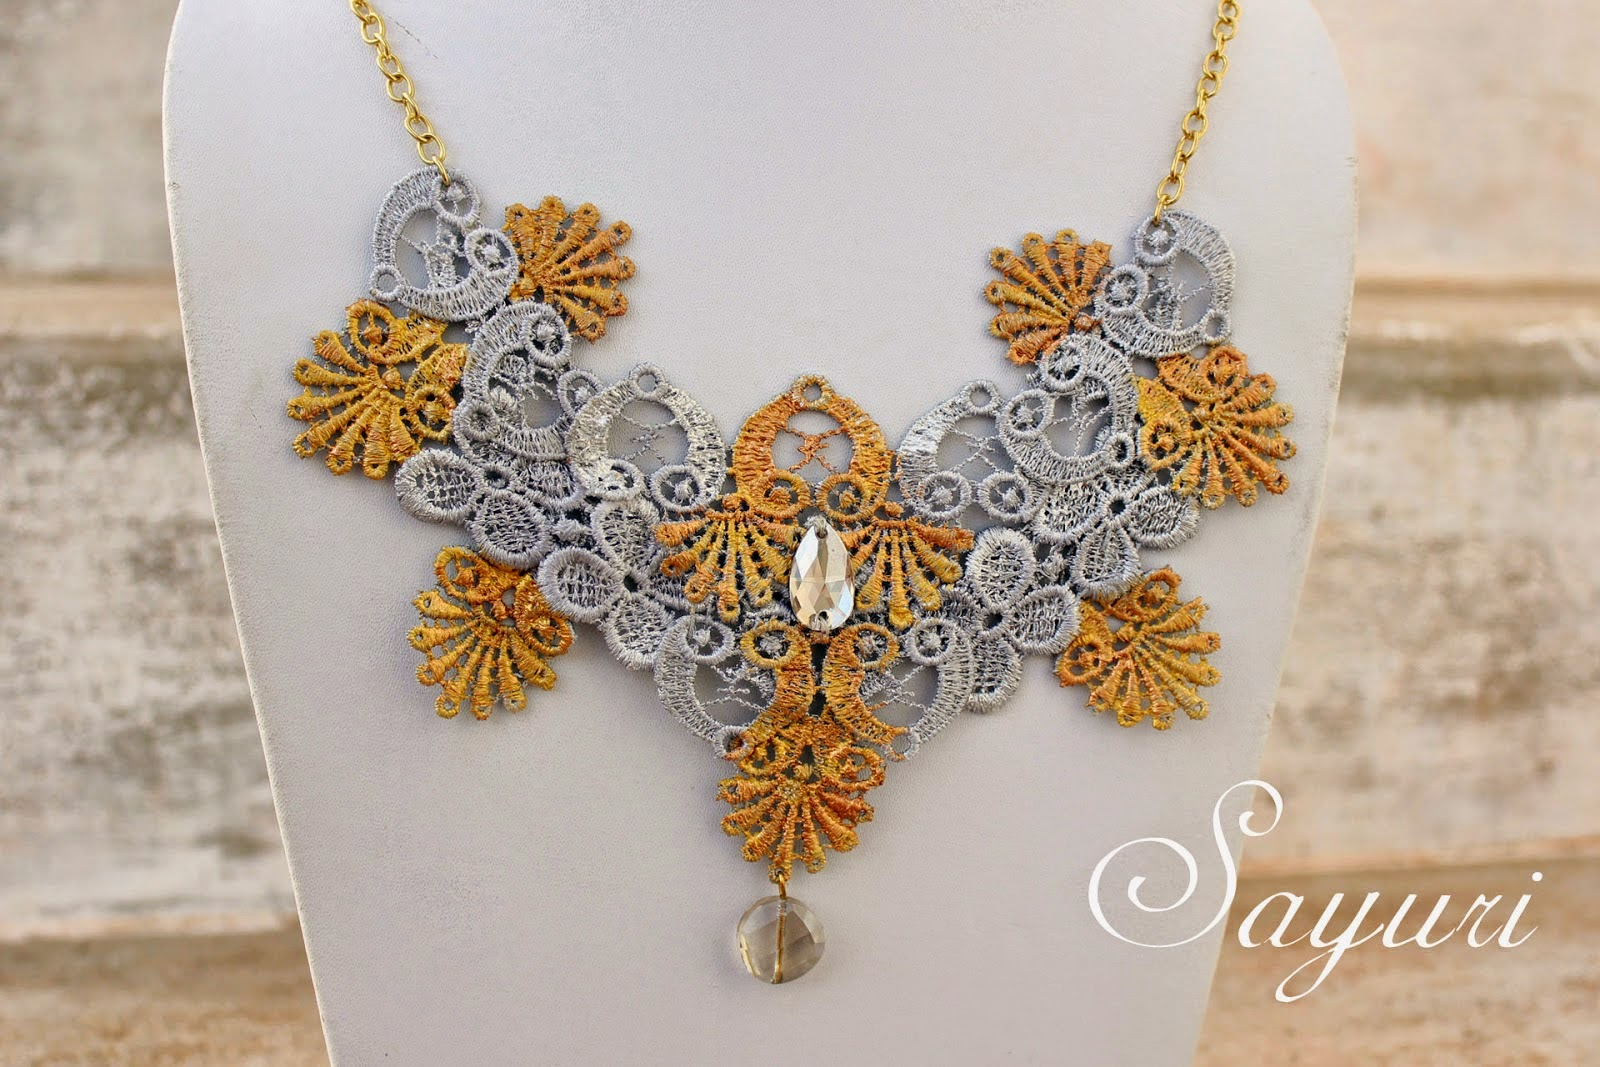 http://www.jewelsofsayuri.com/2014/08/metallic-lace-necklace-diy.html